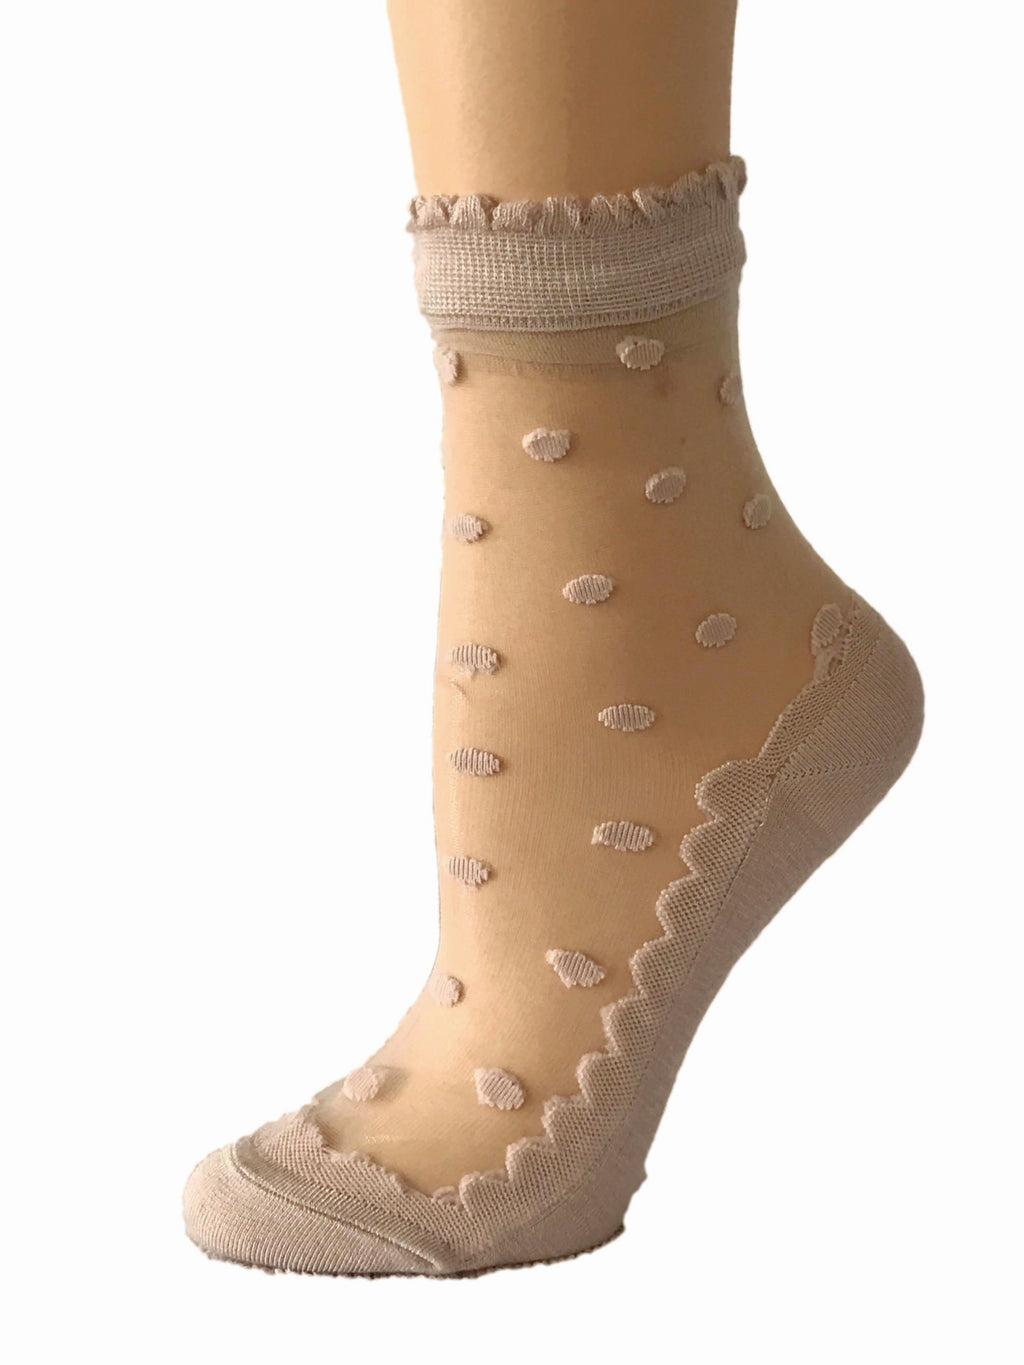 Elegant Dotted Sheer Socks - Global Trendz Fashion®